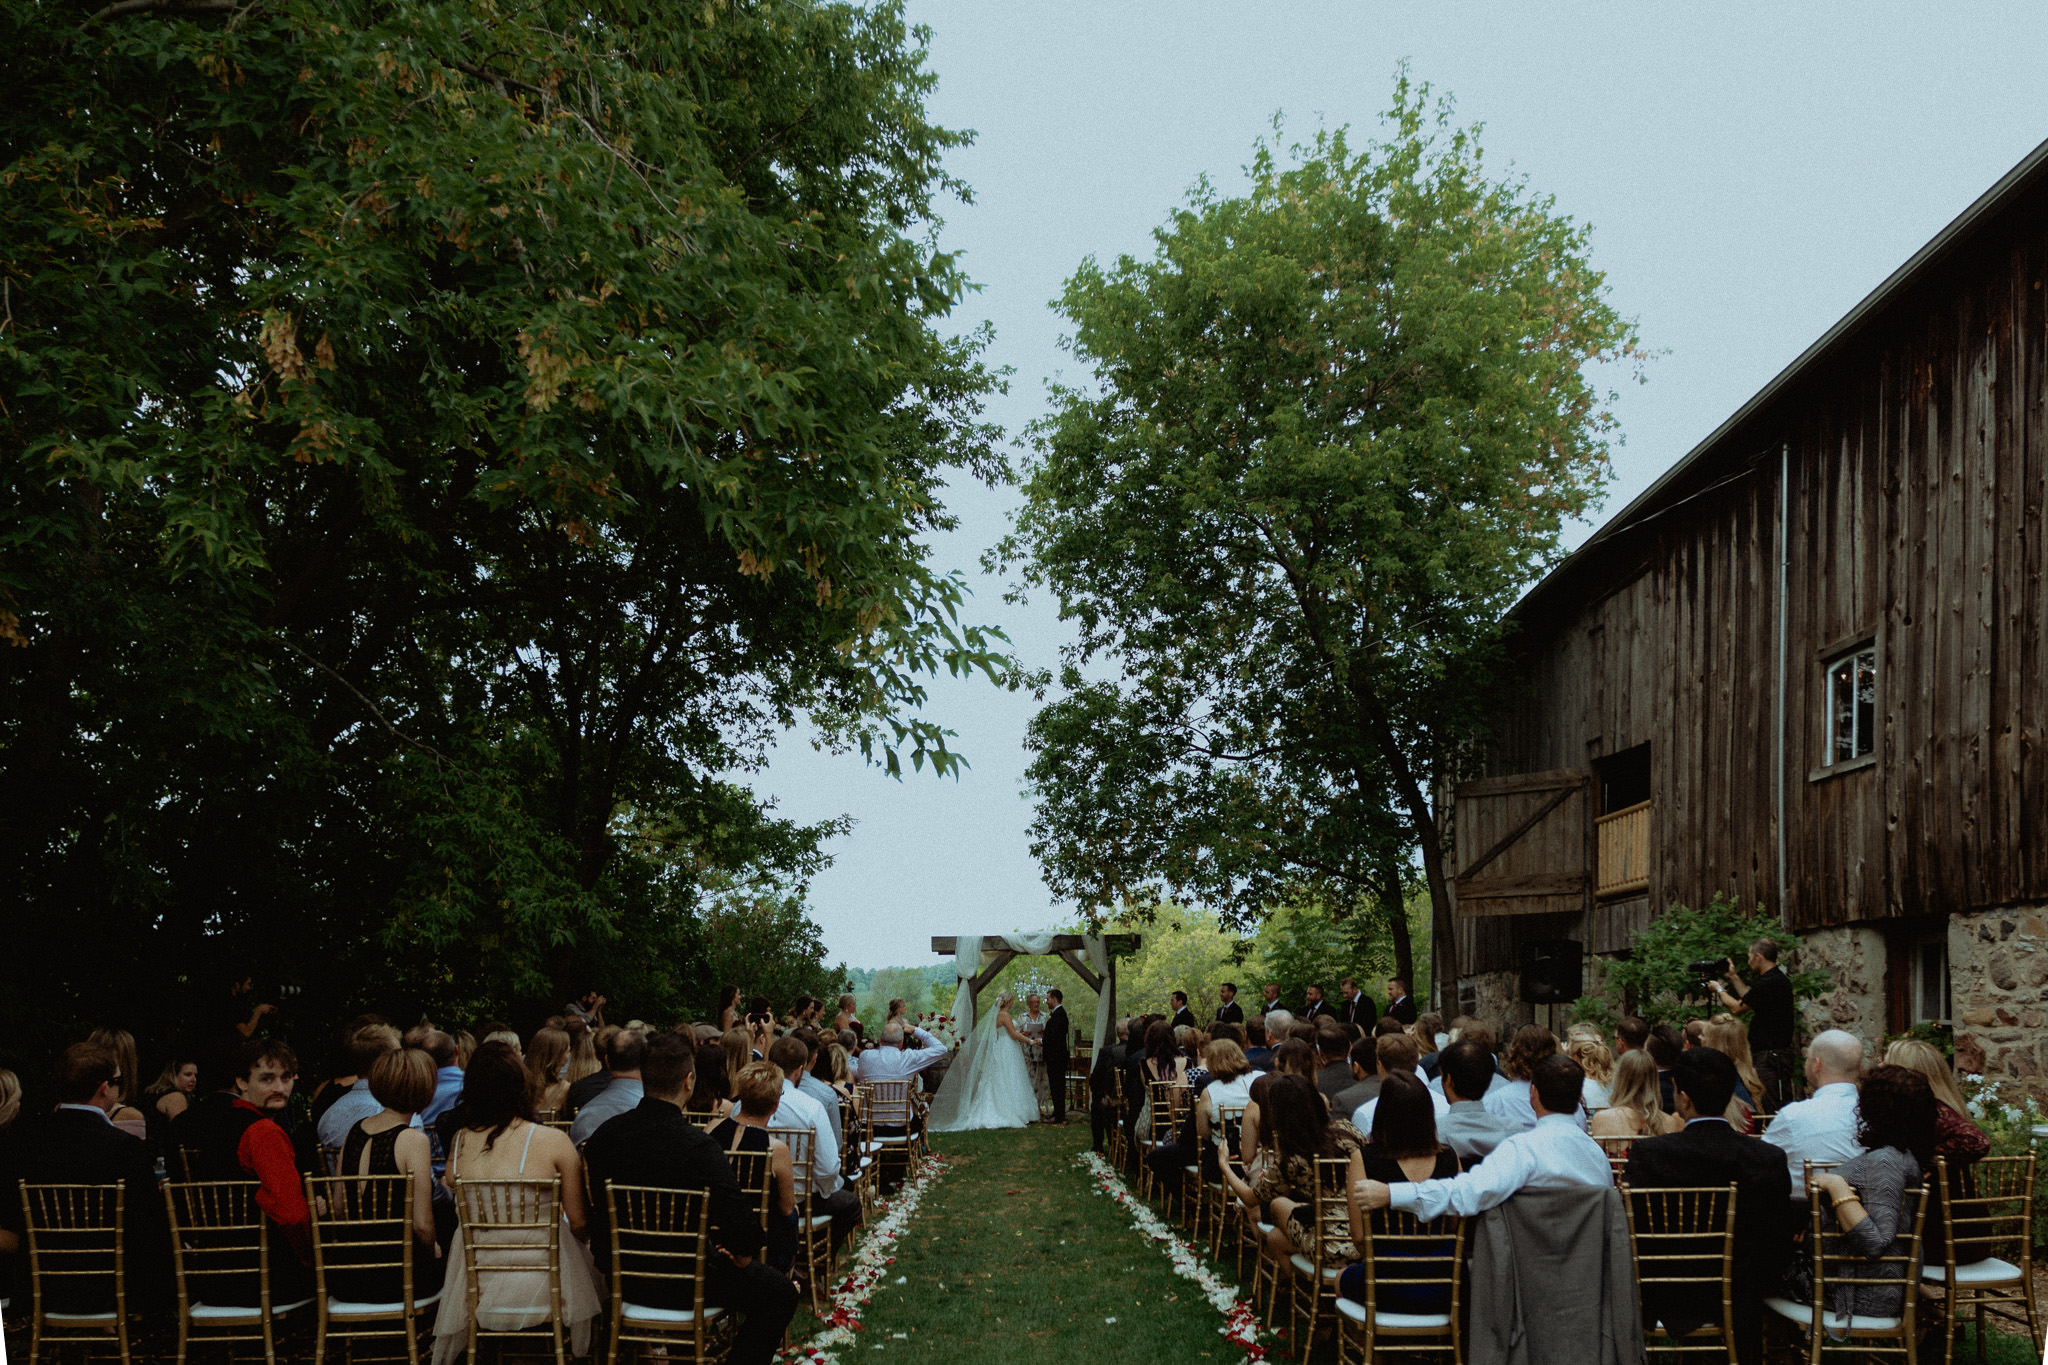 Century Barn Weddings outdoor ceremony location setup cavan ontario photographer